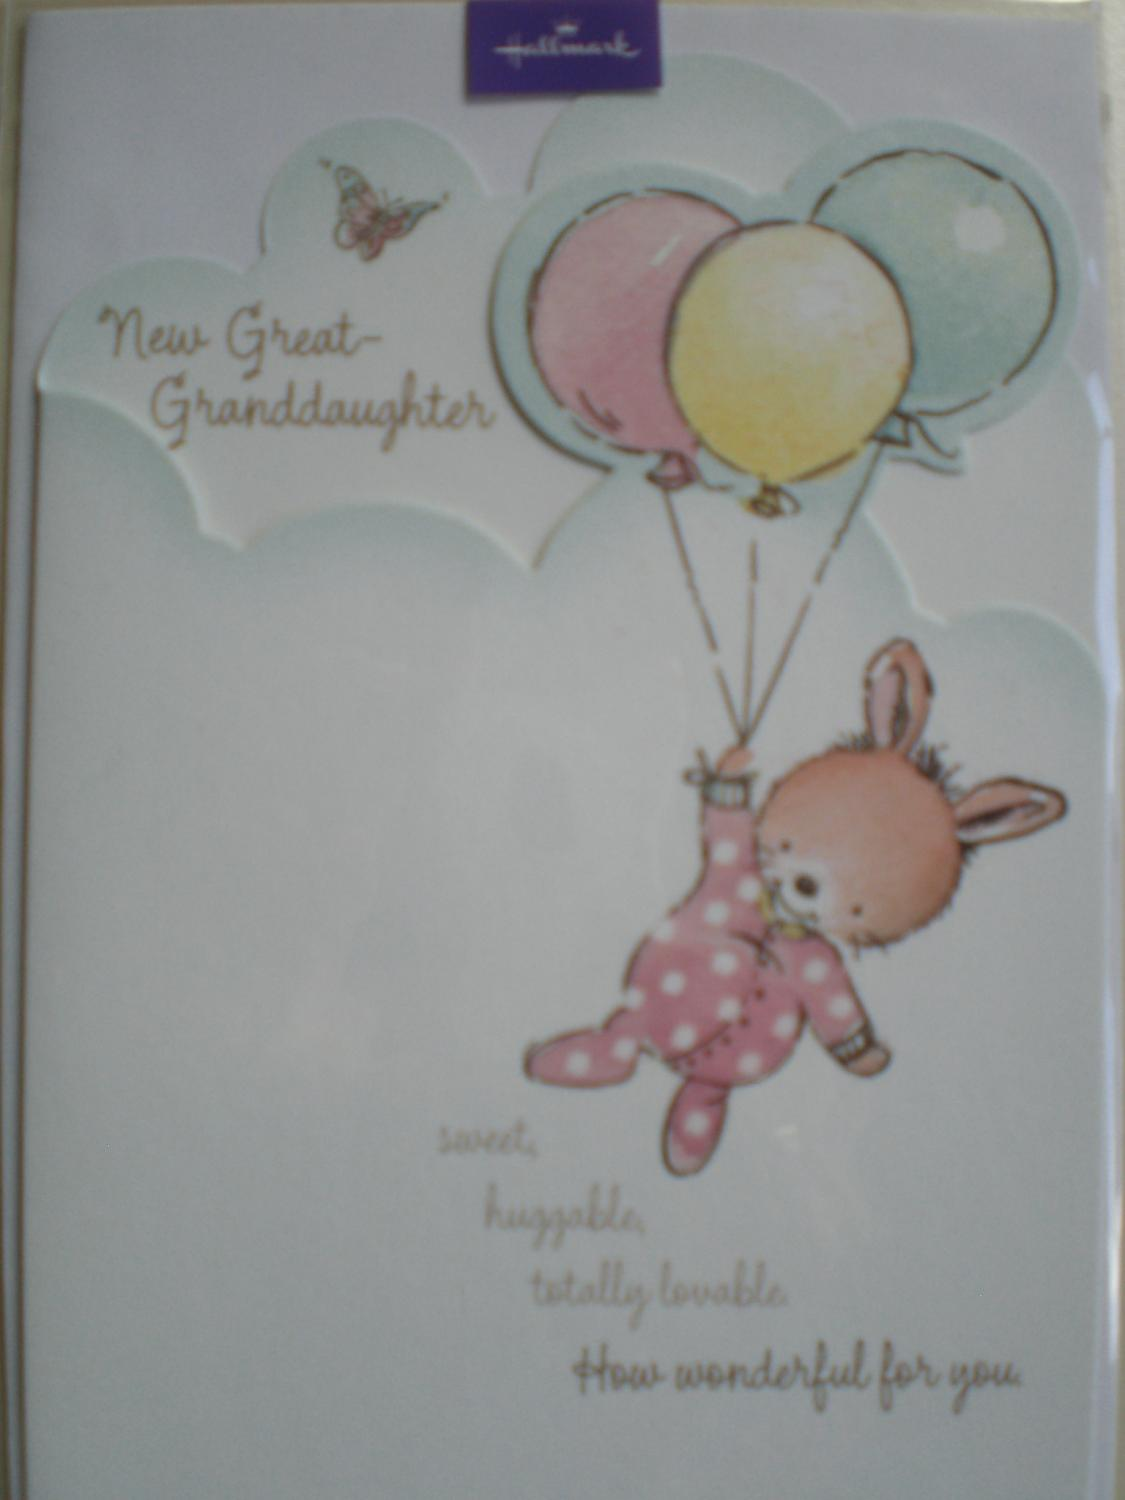 New great granddaughter card